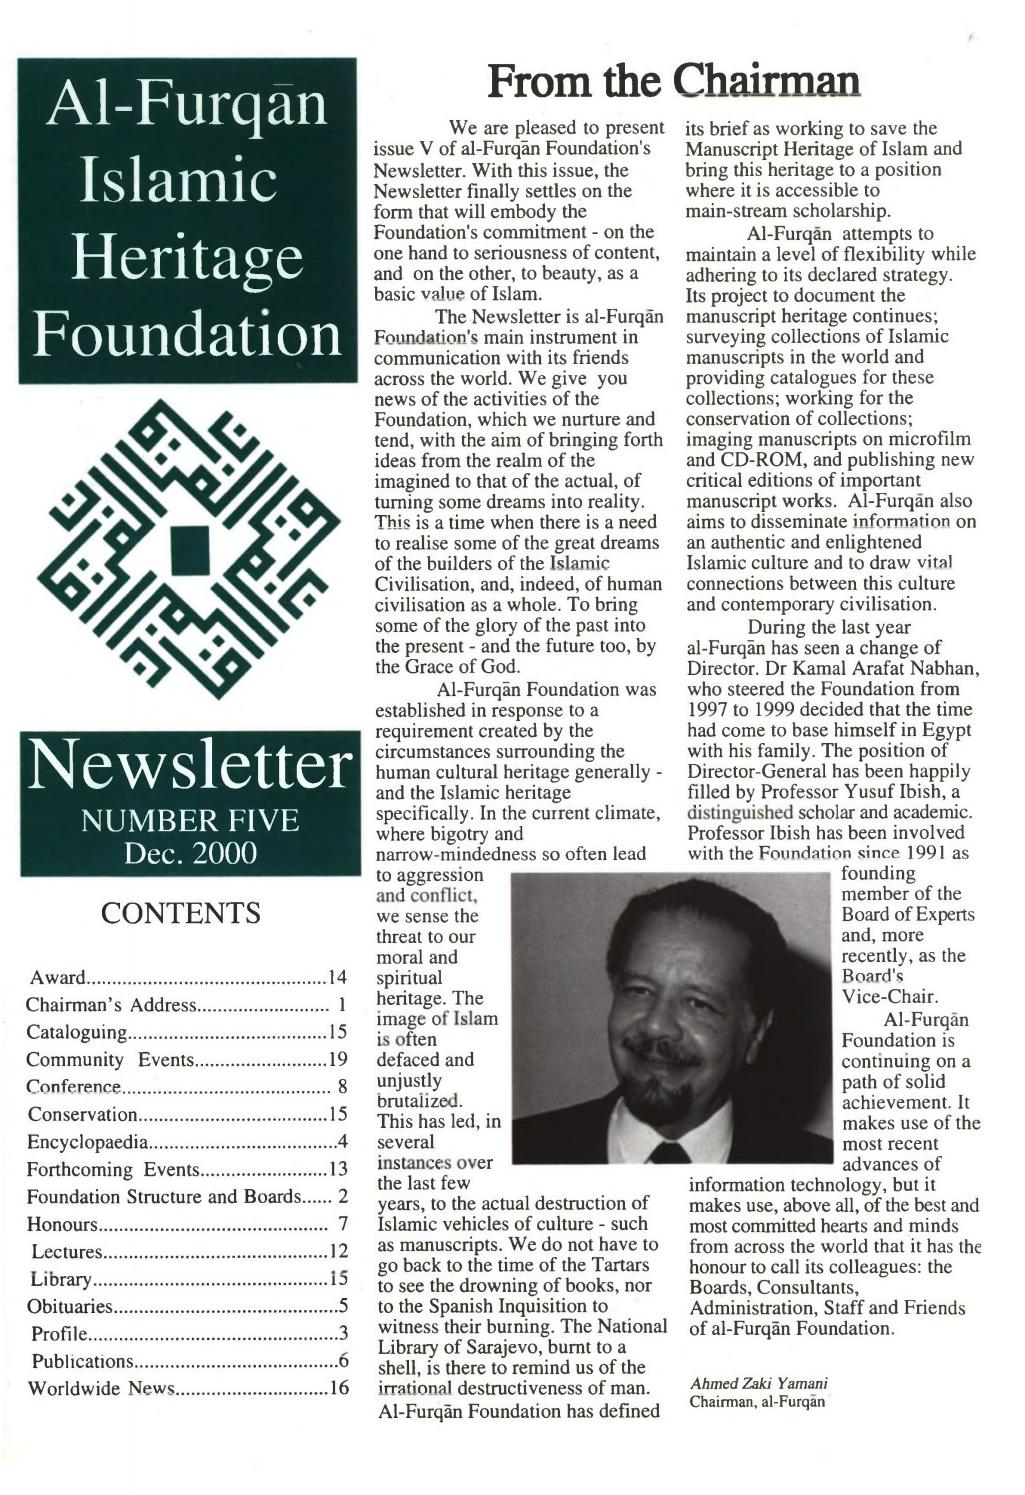 Newsletter No  5 - Dec  2000 by Al-Furqan Islamic Heritage